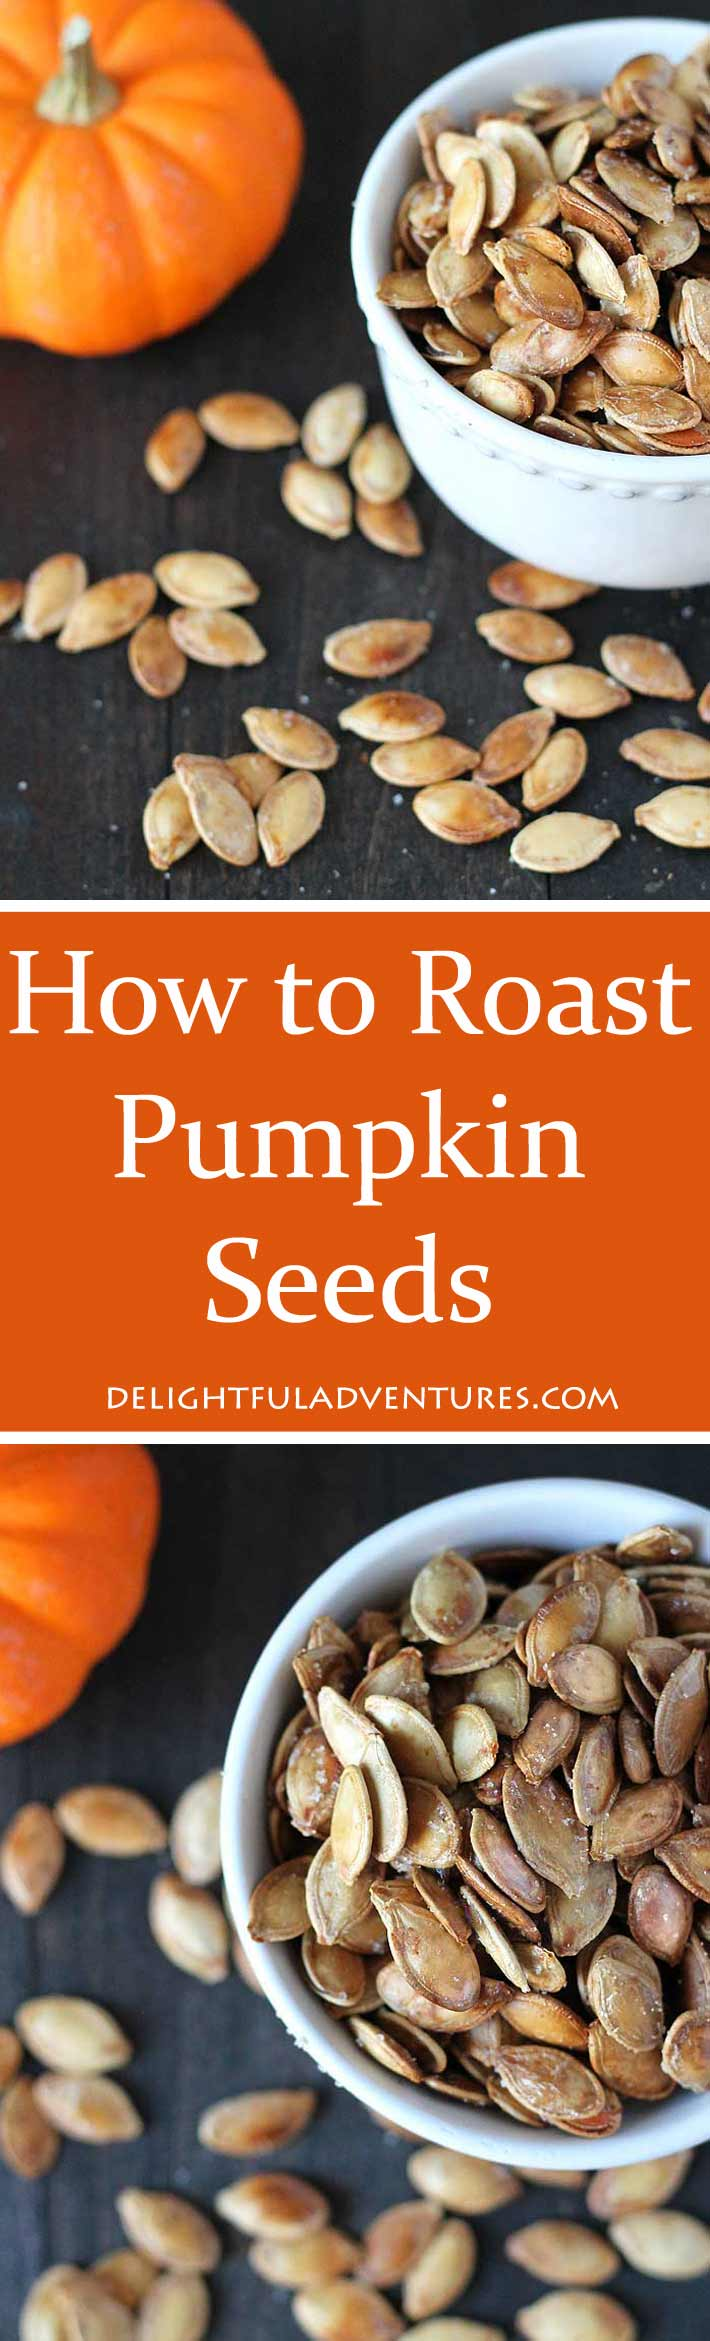 Don't throw those pumpkin seeds away! Follow this step-by-step on How to Roast Pumpkin Seeds and see just how easy it is to do. You'll never throw them out again! #pumpkinseeds #roastedpumpkinseeds #vegansnacks